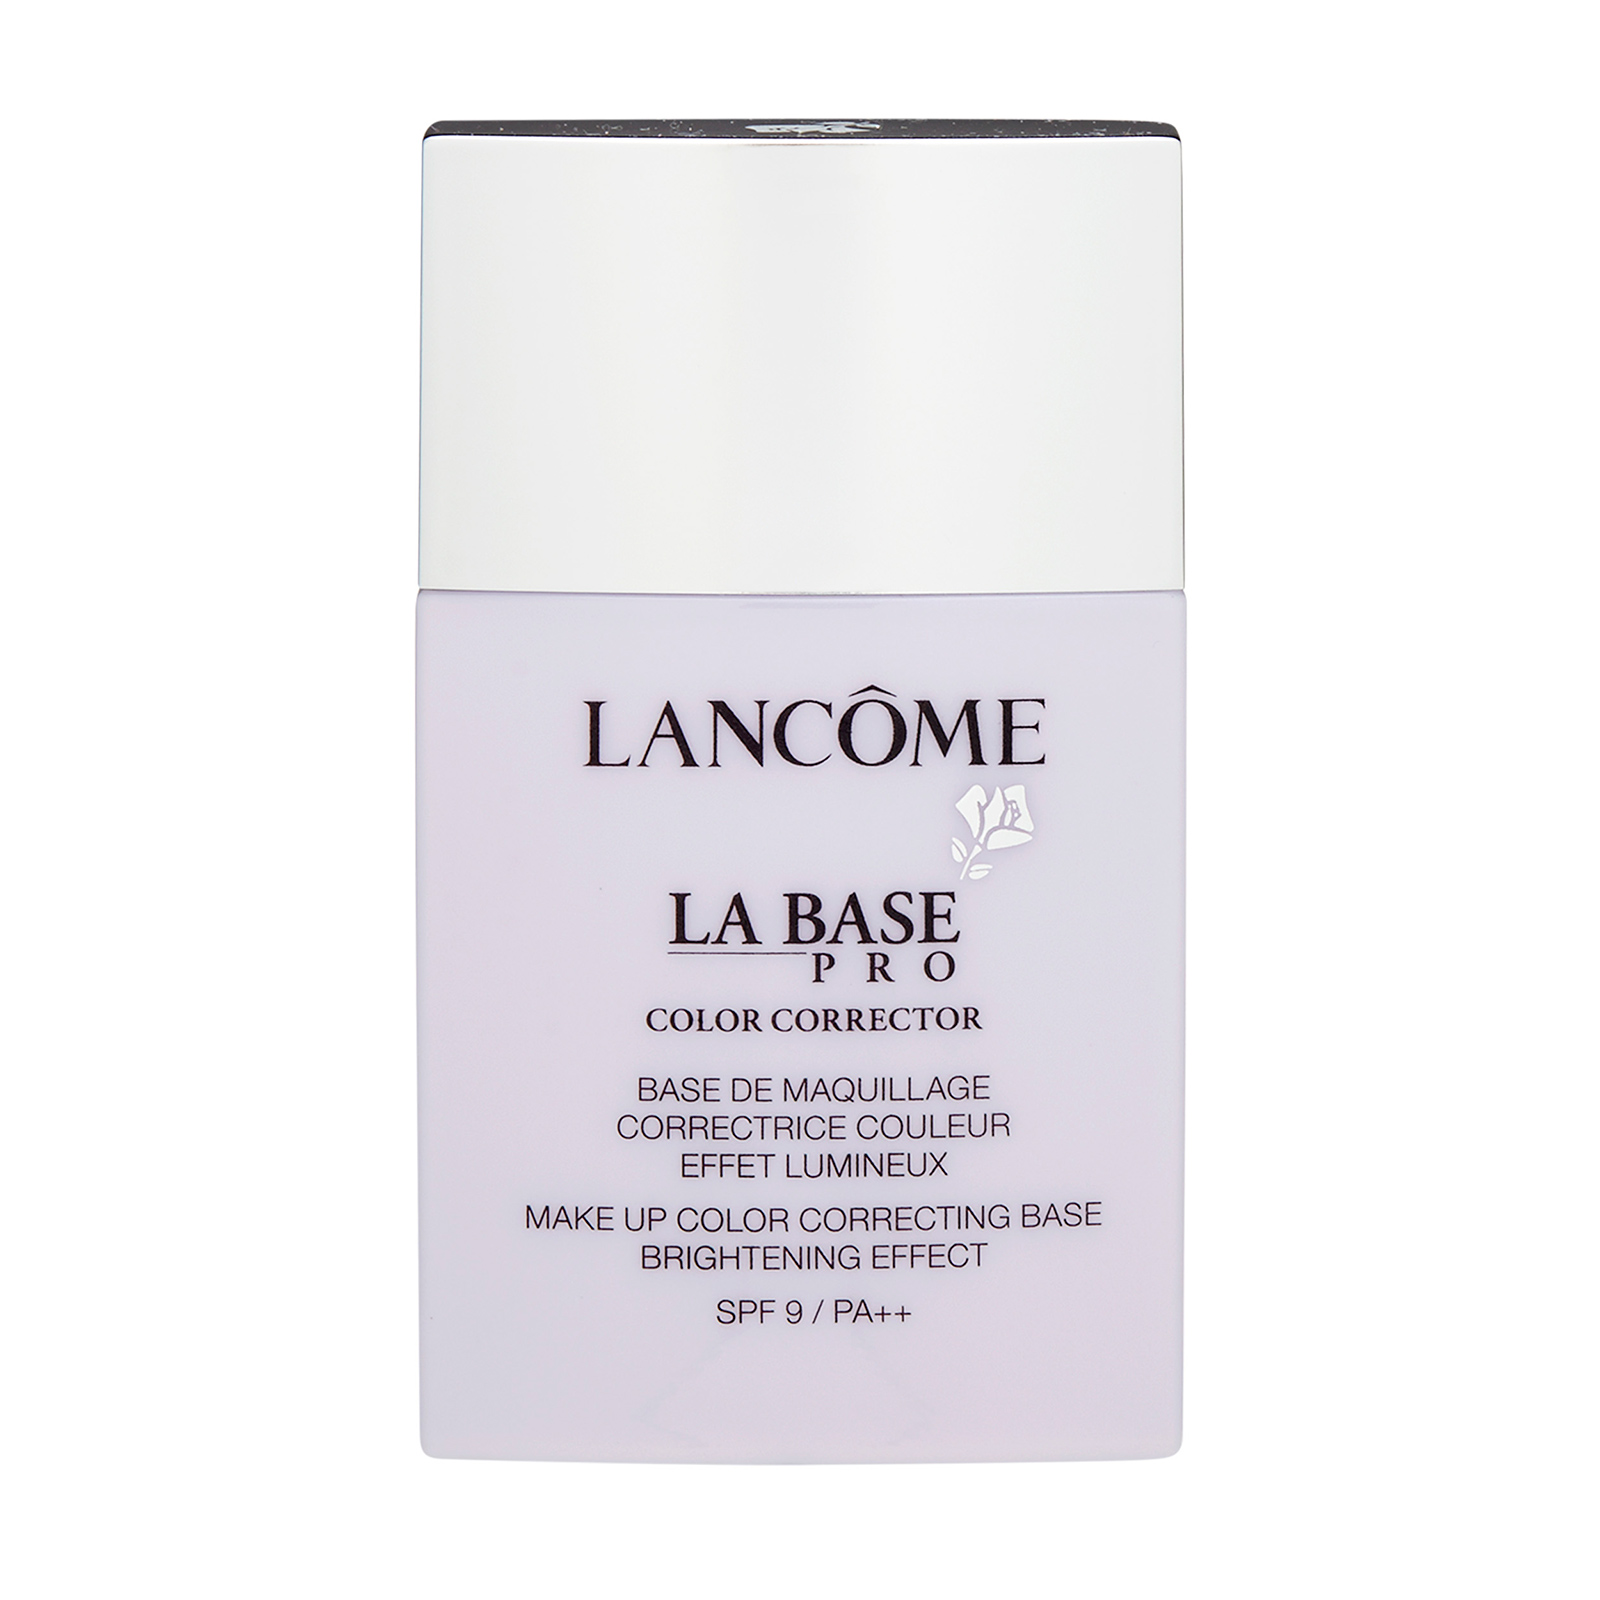 LANCÔME La Base Pro Color Corrector Make Up Color Correcting Base Brightening Effect SPF9 / PA++ 01 Lavande, 1.44oz, 40ml